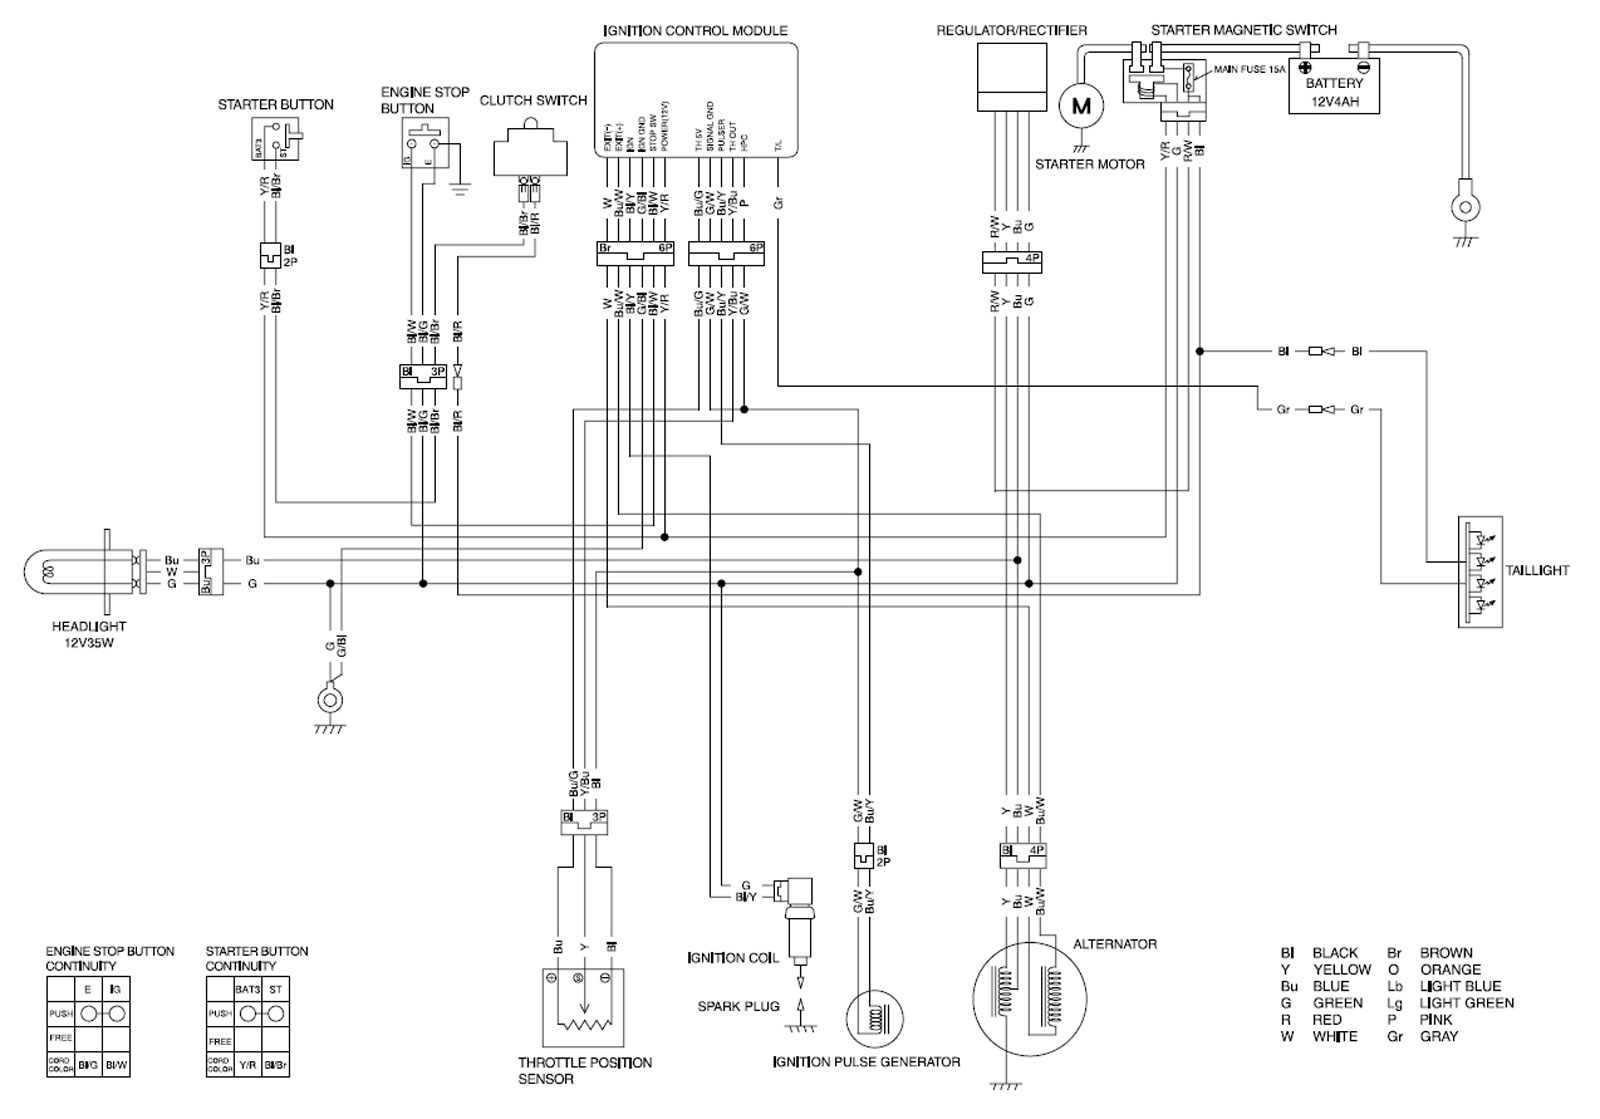 Crf 250 Wiring Diagram - wiring diagrams schematics